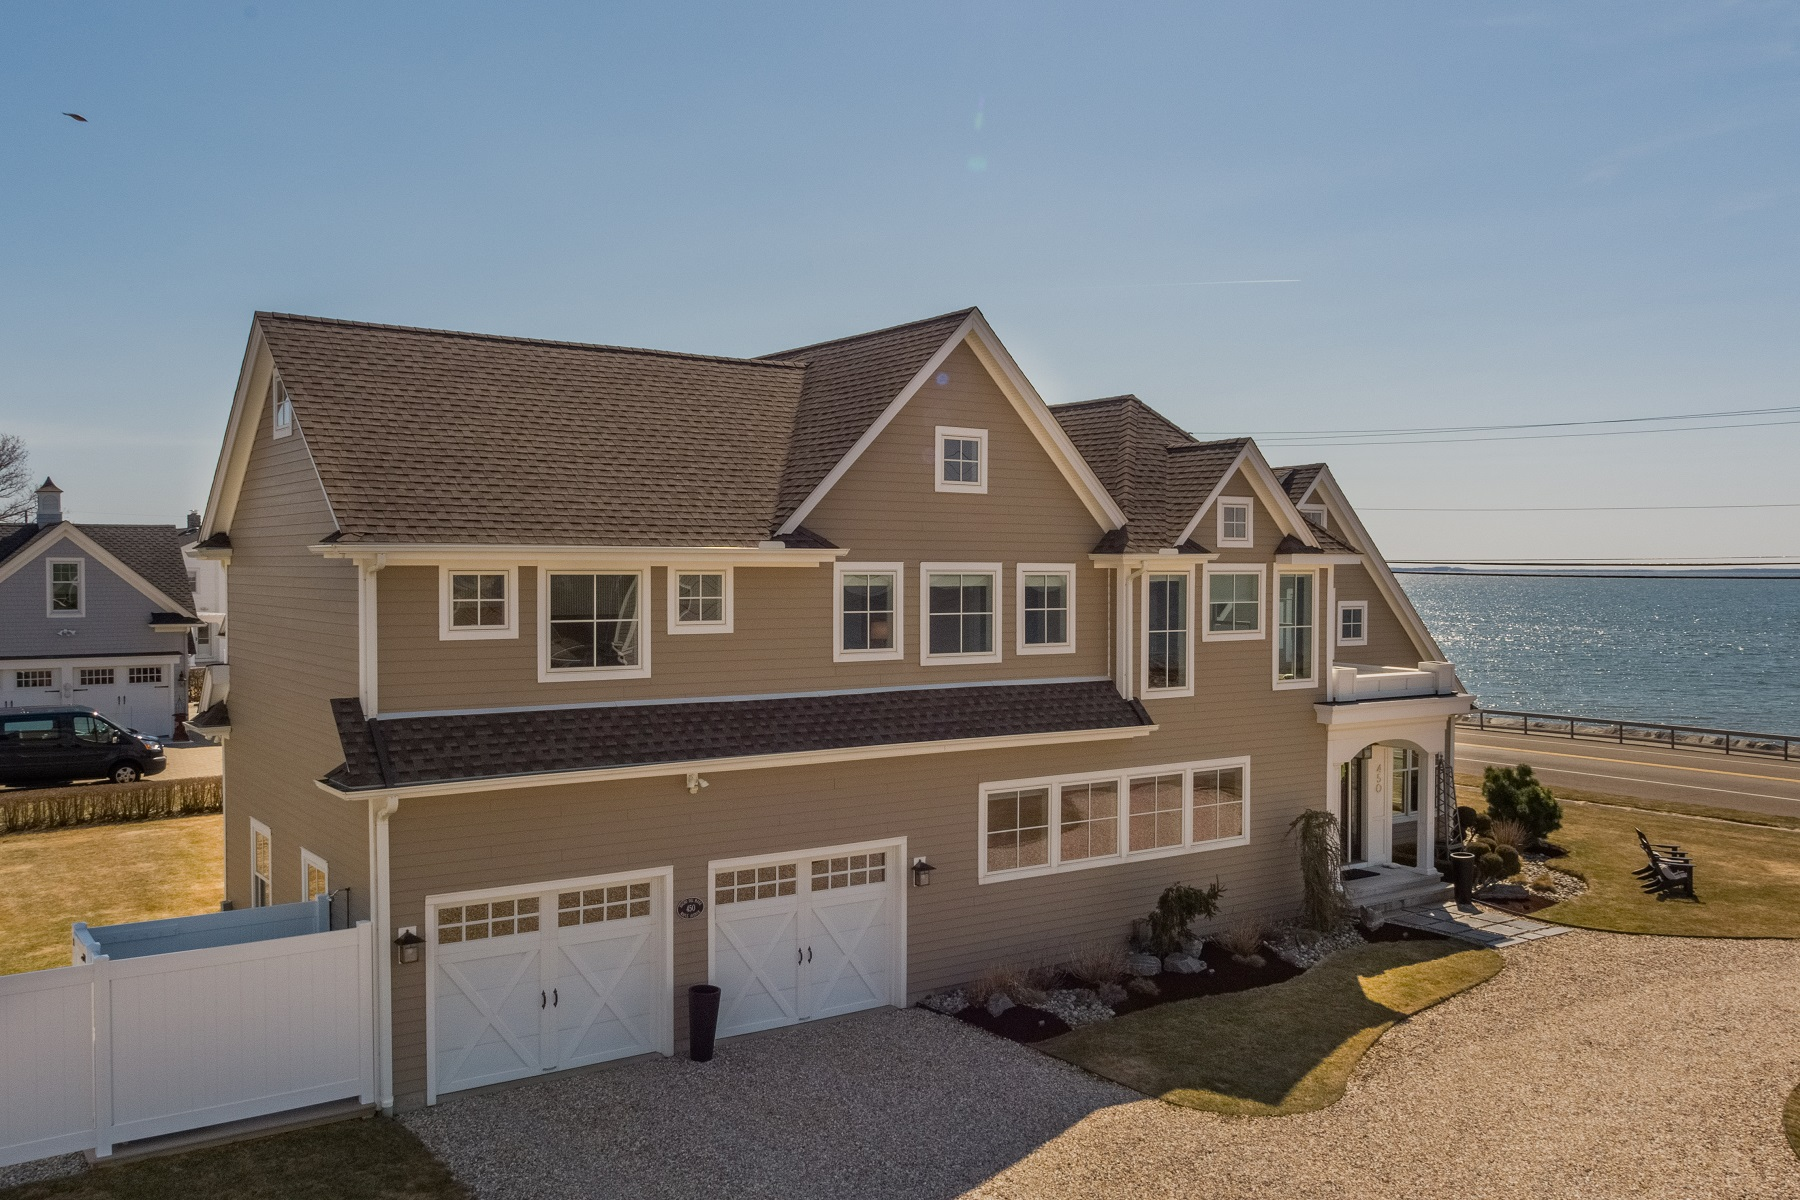 single family homes voor Verkoop op Unobstructed Views of Long Island Sound 450 Maple Avenue, Old Saybrook, Connecticut 06475 Verenigde Staten